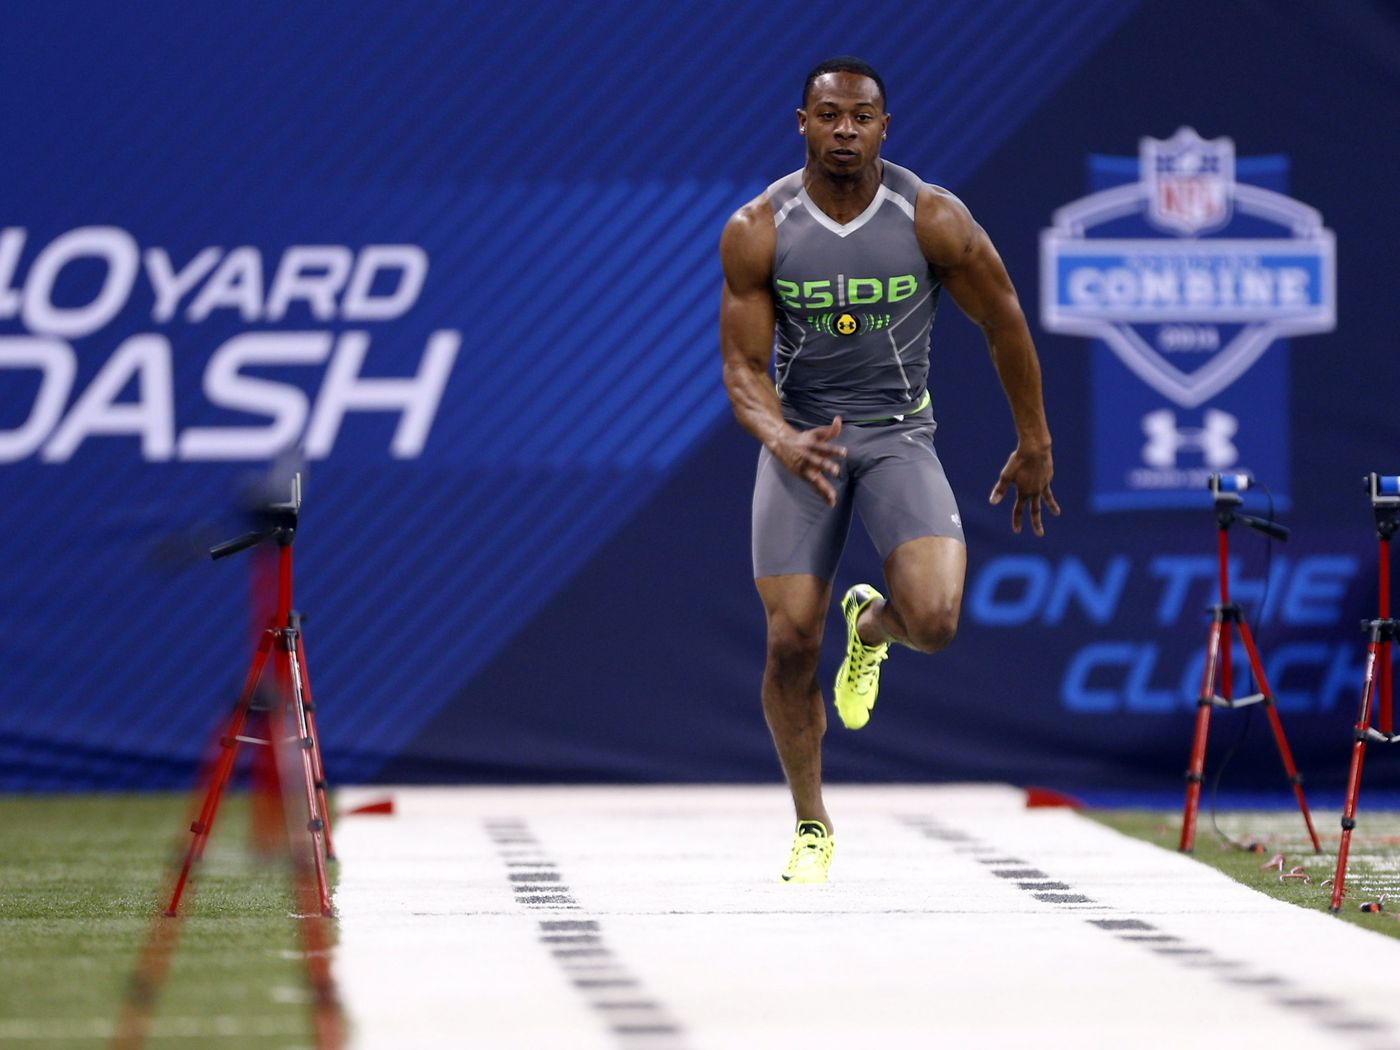 2014 Nfl Combine Results Defensive Backs 40 Yard Dash Vertical More Silver And Black Pride